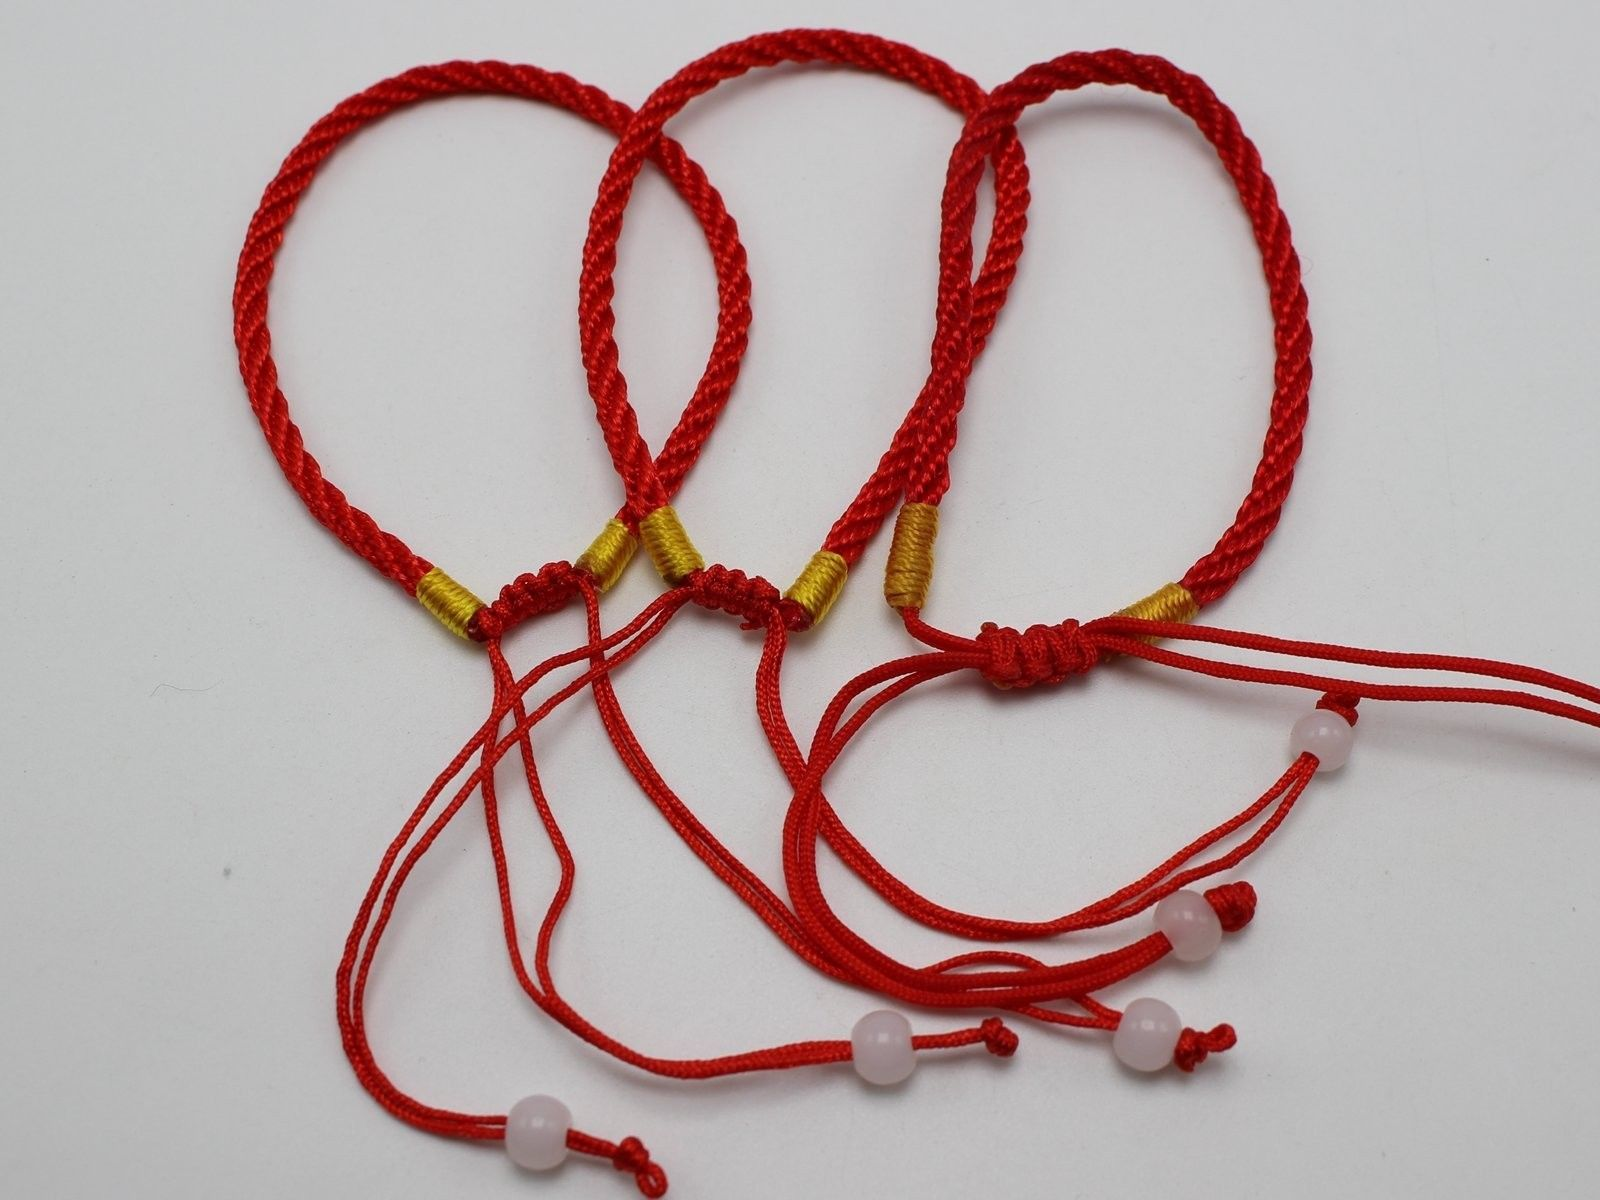 10 Braided Lucky Red String Love Rope Cord Jude Beaded Adjustable Bracelet